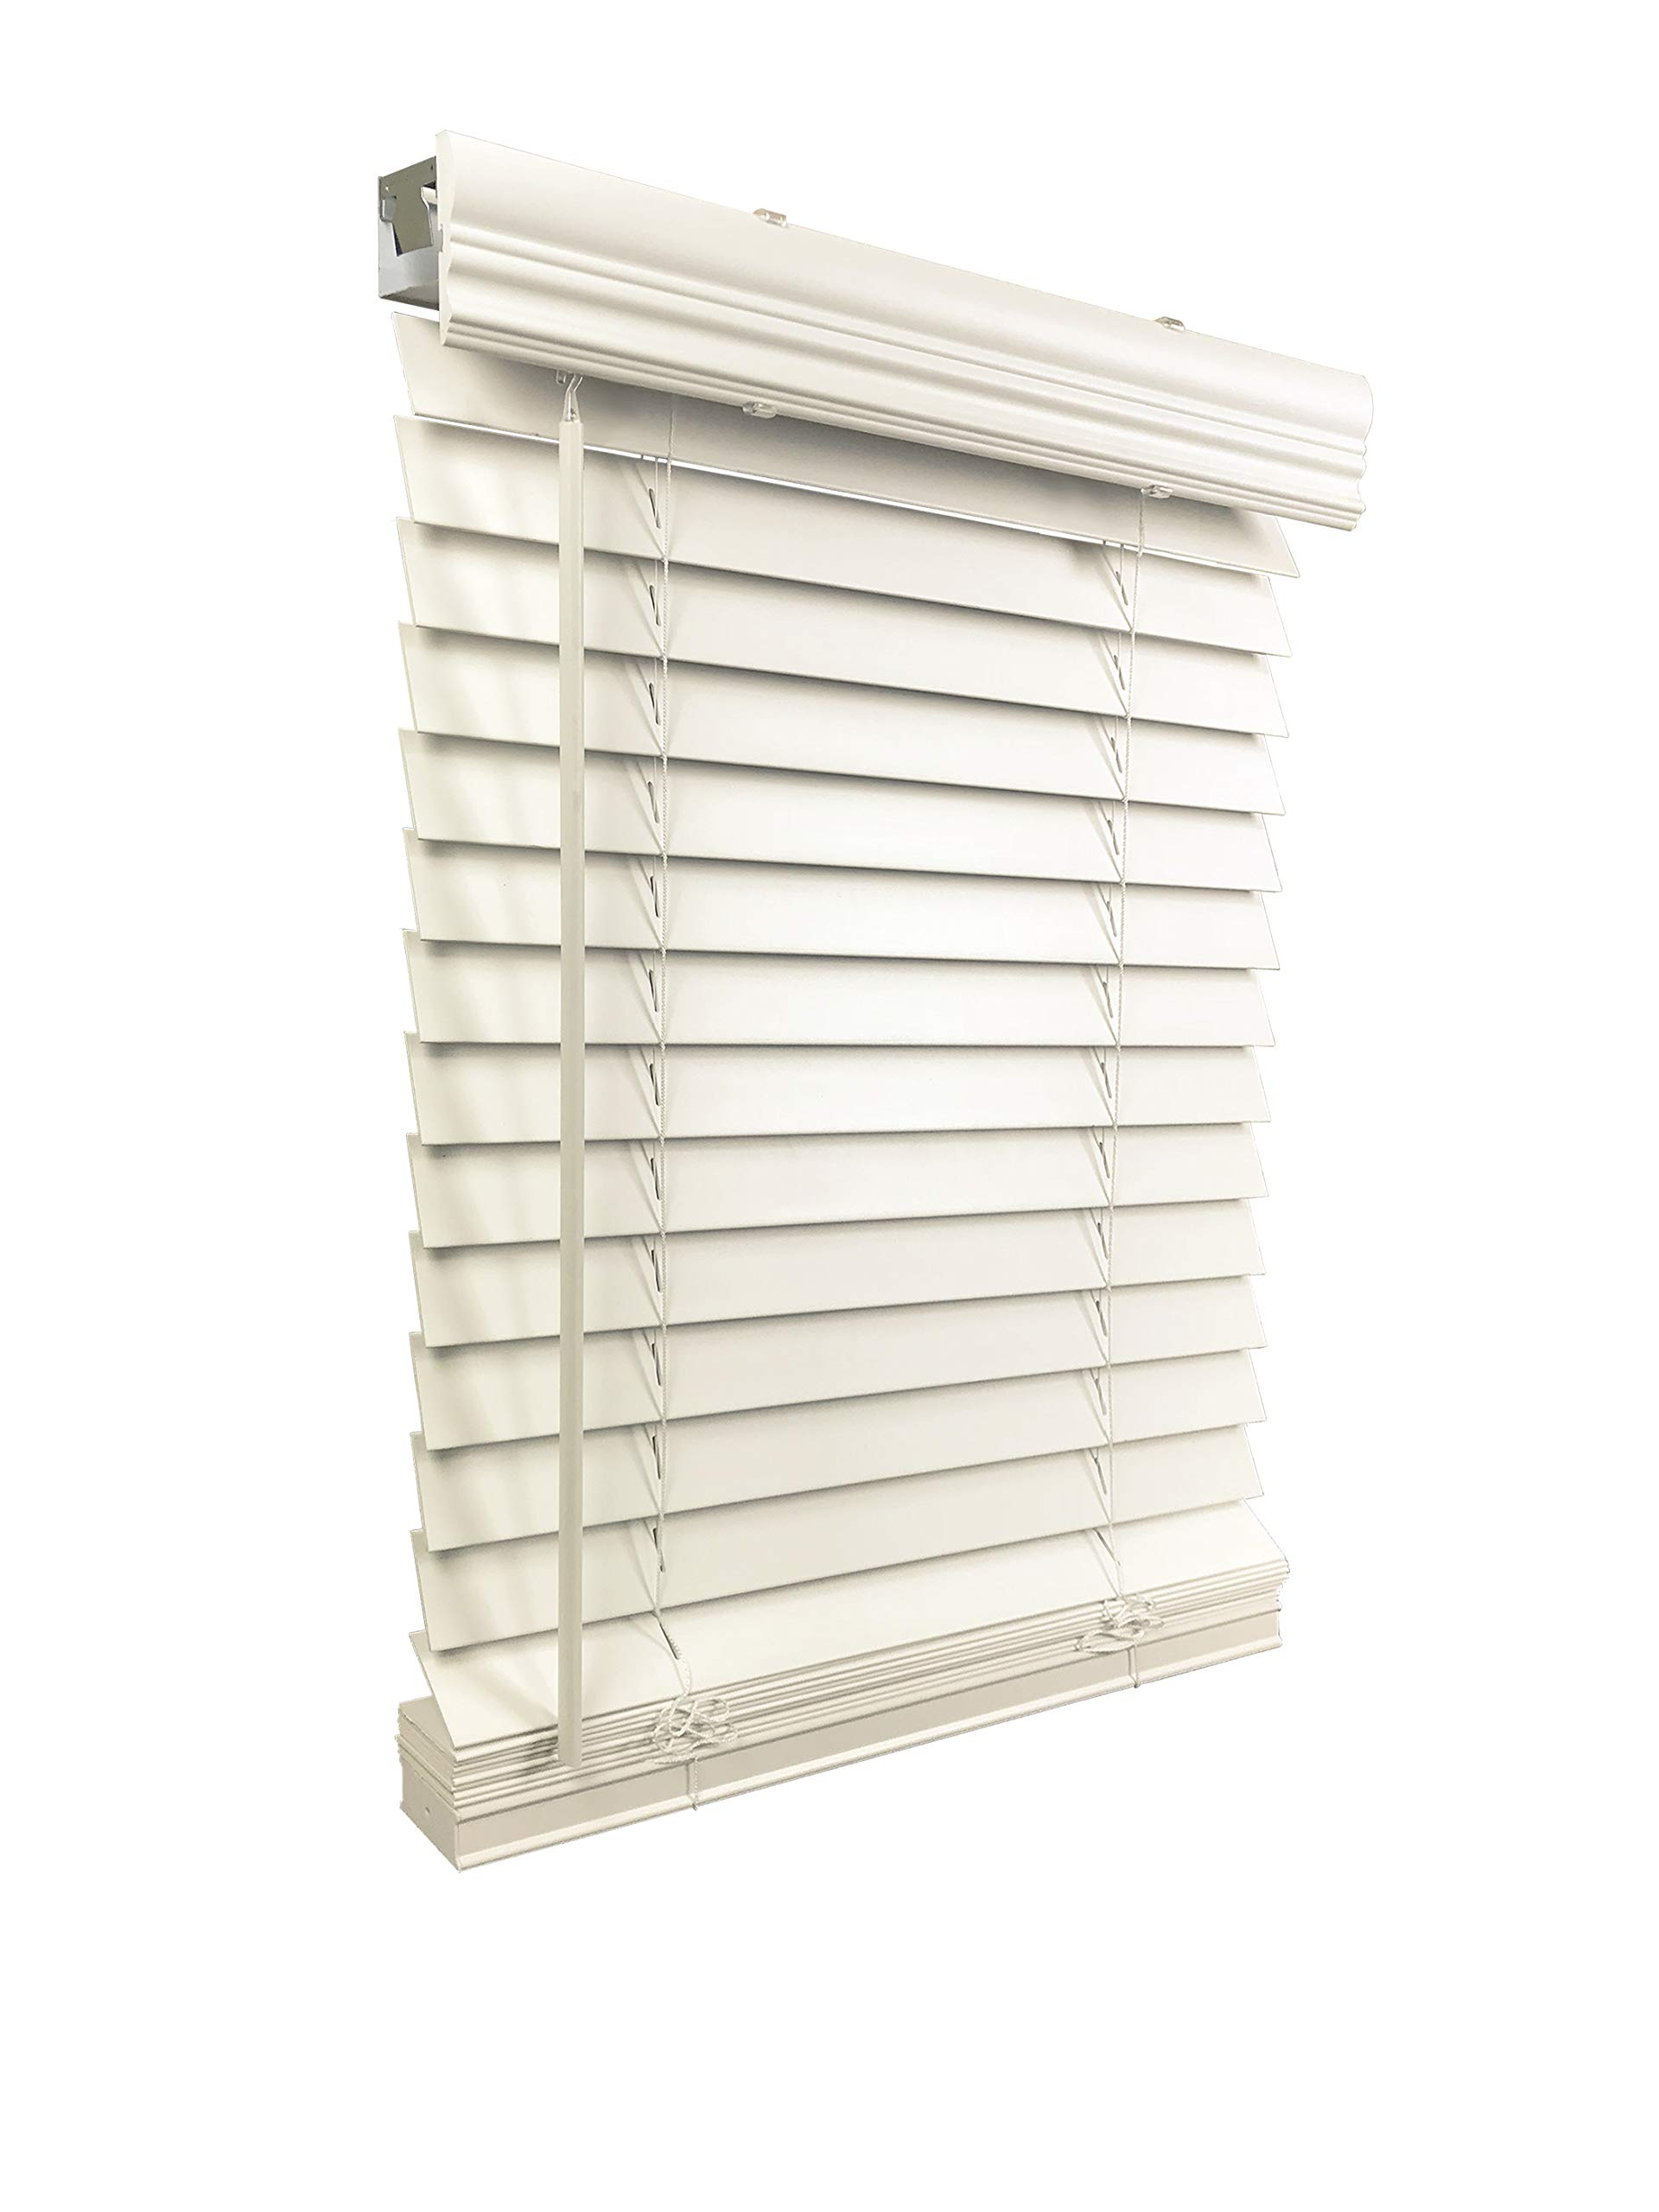 US Window And Floor 2'' Faux Wood 35'' W x 60'' H, Inside Mount Cordless Blinds, 35 x 60, White by US Window And Floor